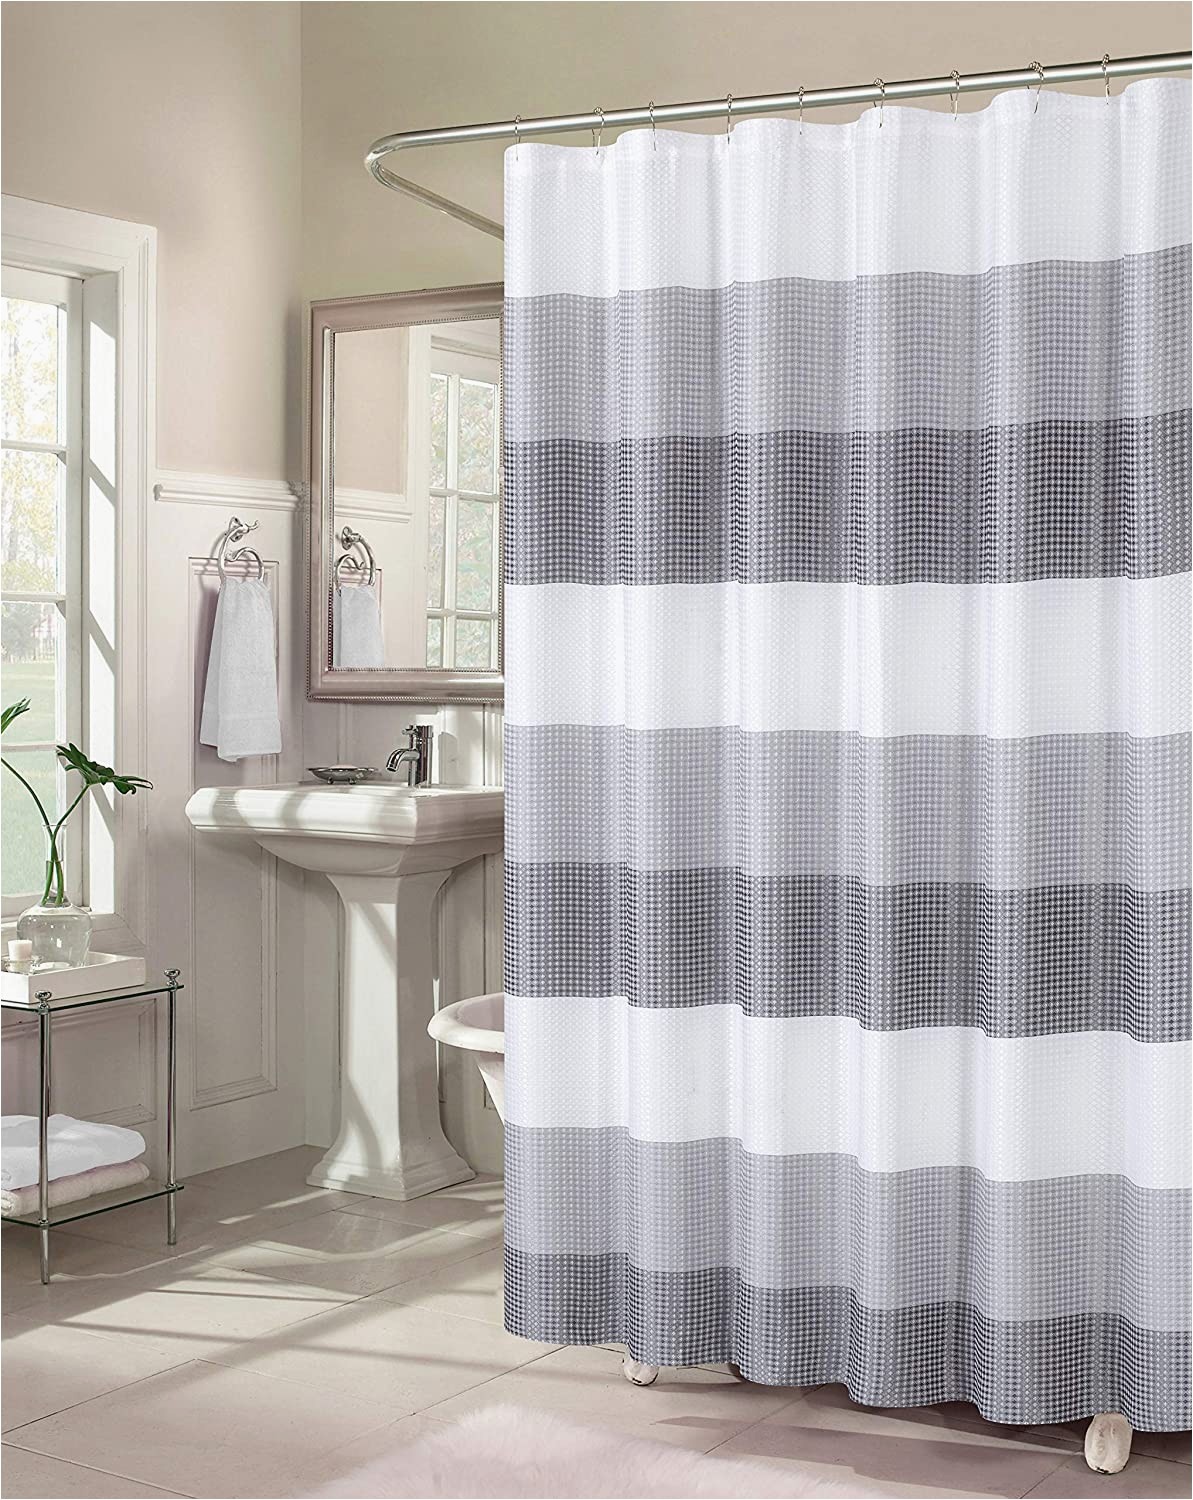 Ombre Stripe Bath Rug Dainty Home Waffle Weave Ombre Stripe Fabric Shower Curtains 70 Inches Wide X 72 Inches Long Grey Smoke